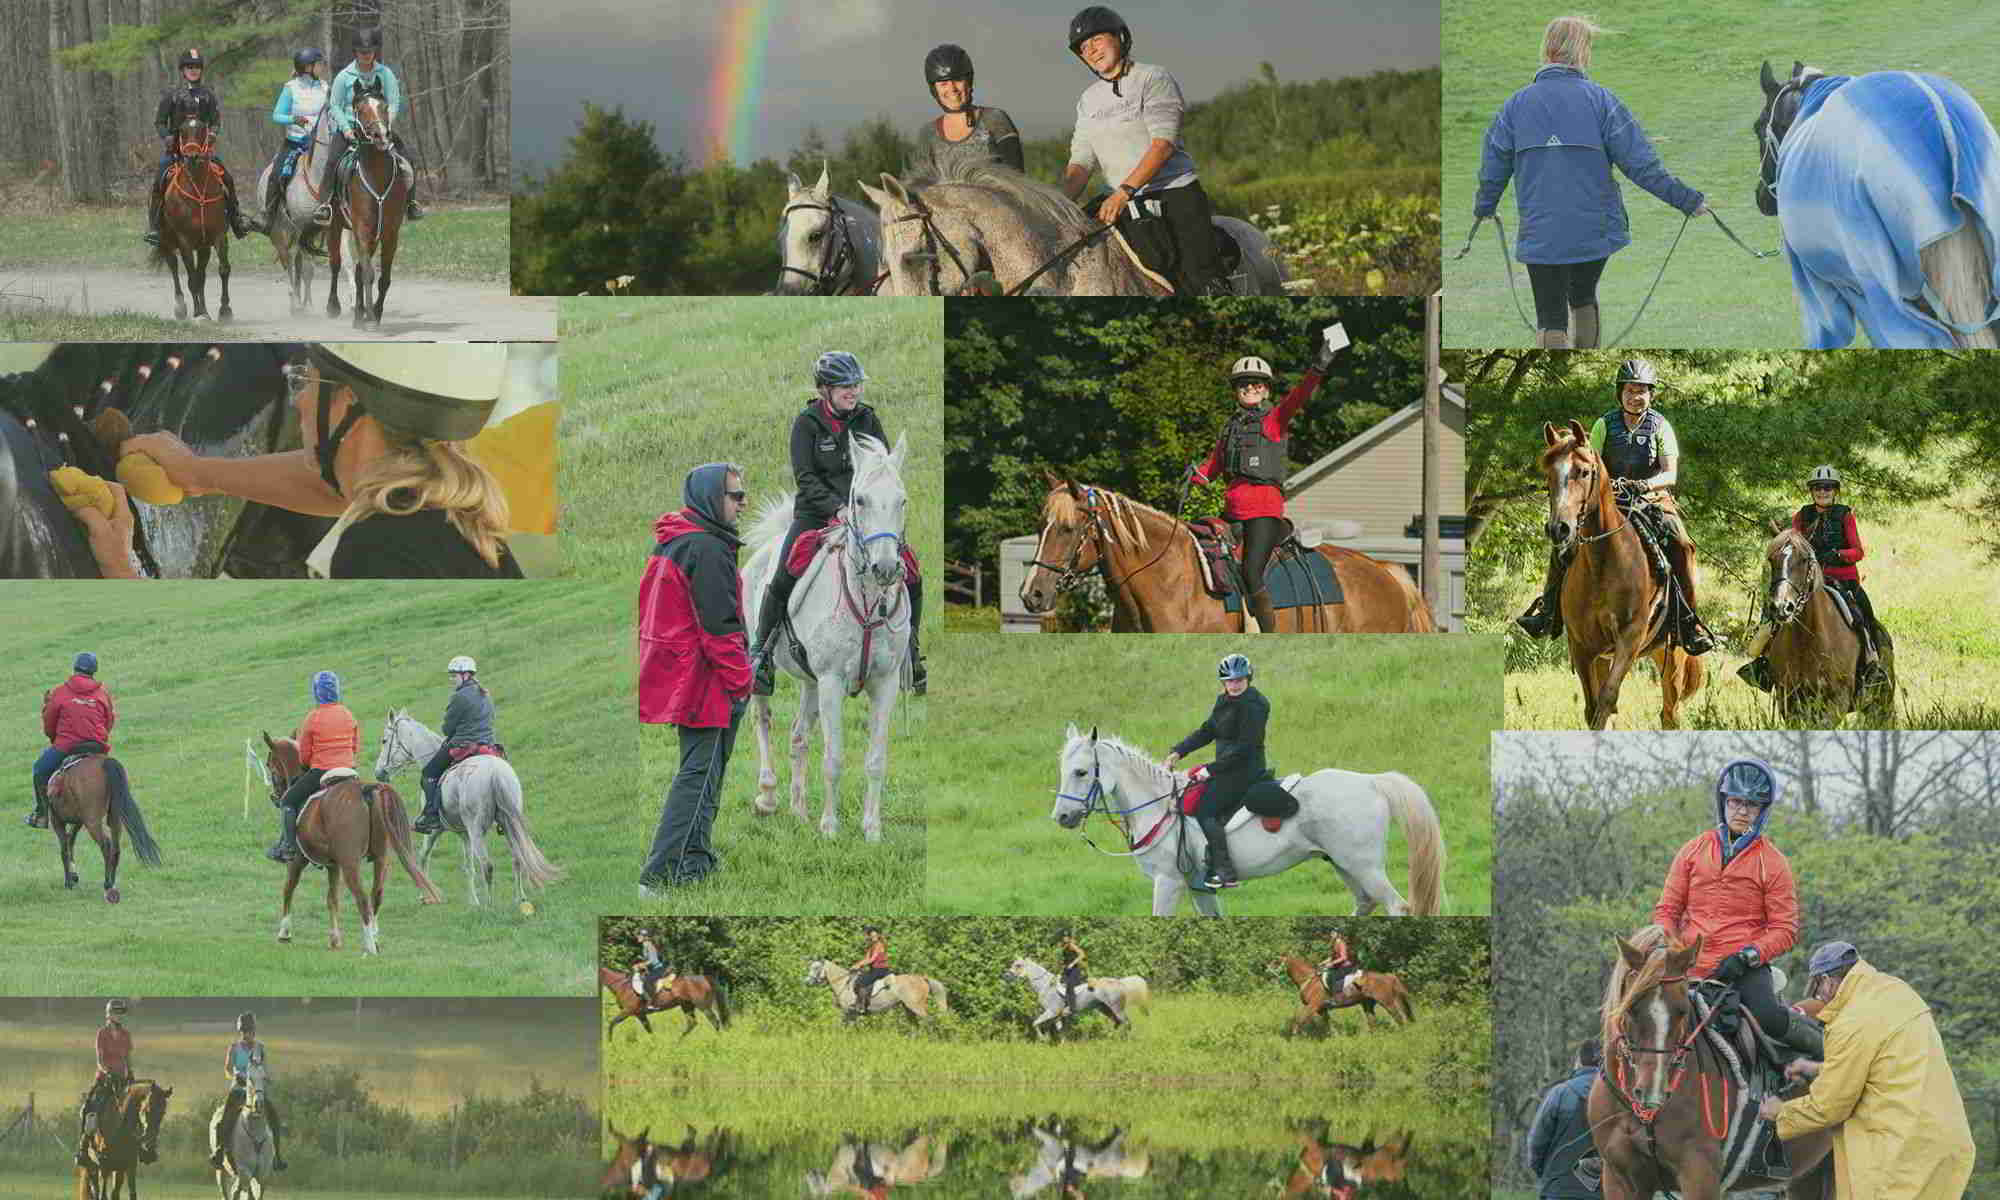 Ontario Competitive Trail Riding Association